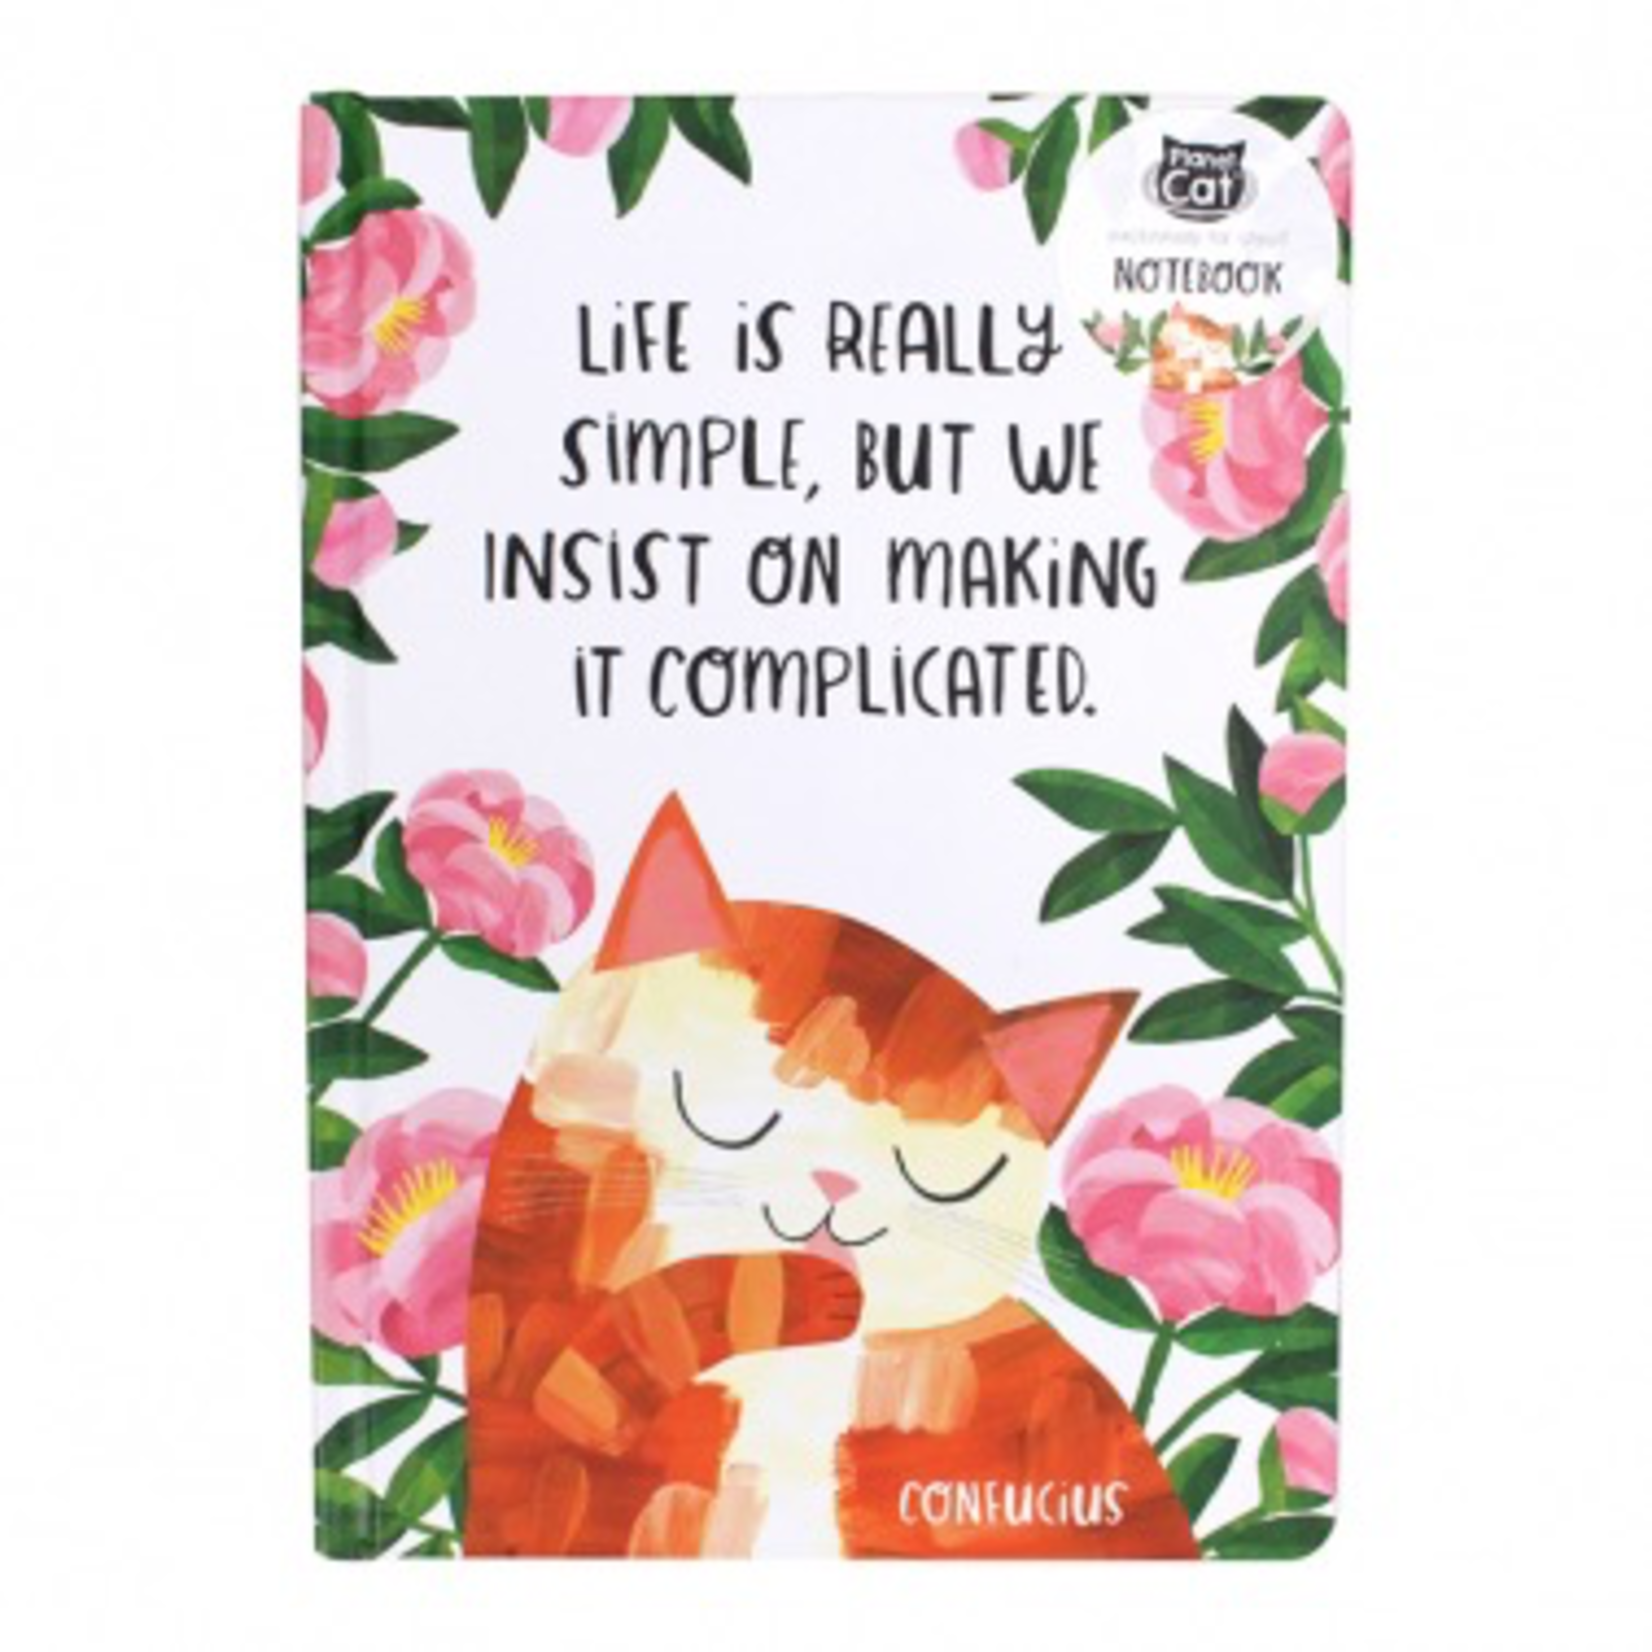 Half Moon Bay A5 Notebook - Planet Cat (Life Is Simple)